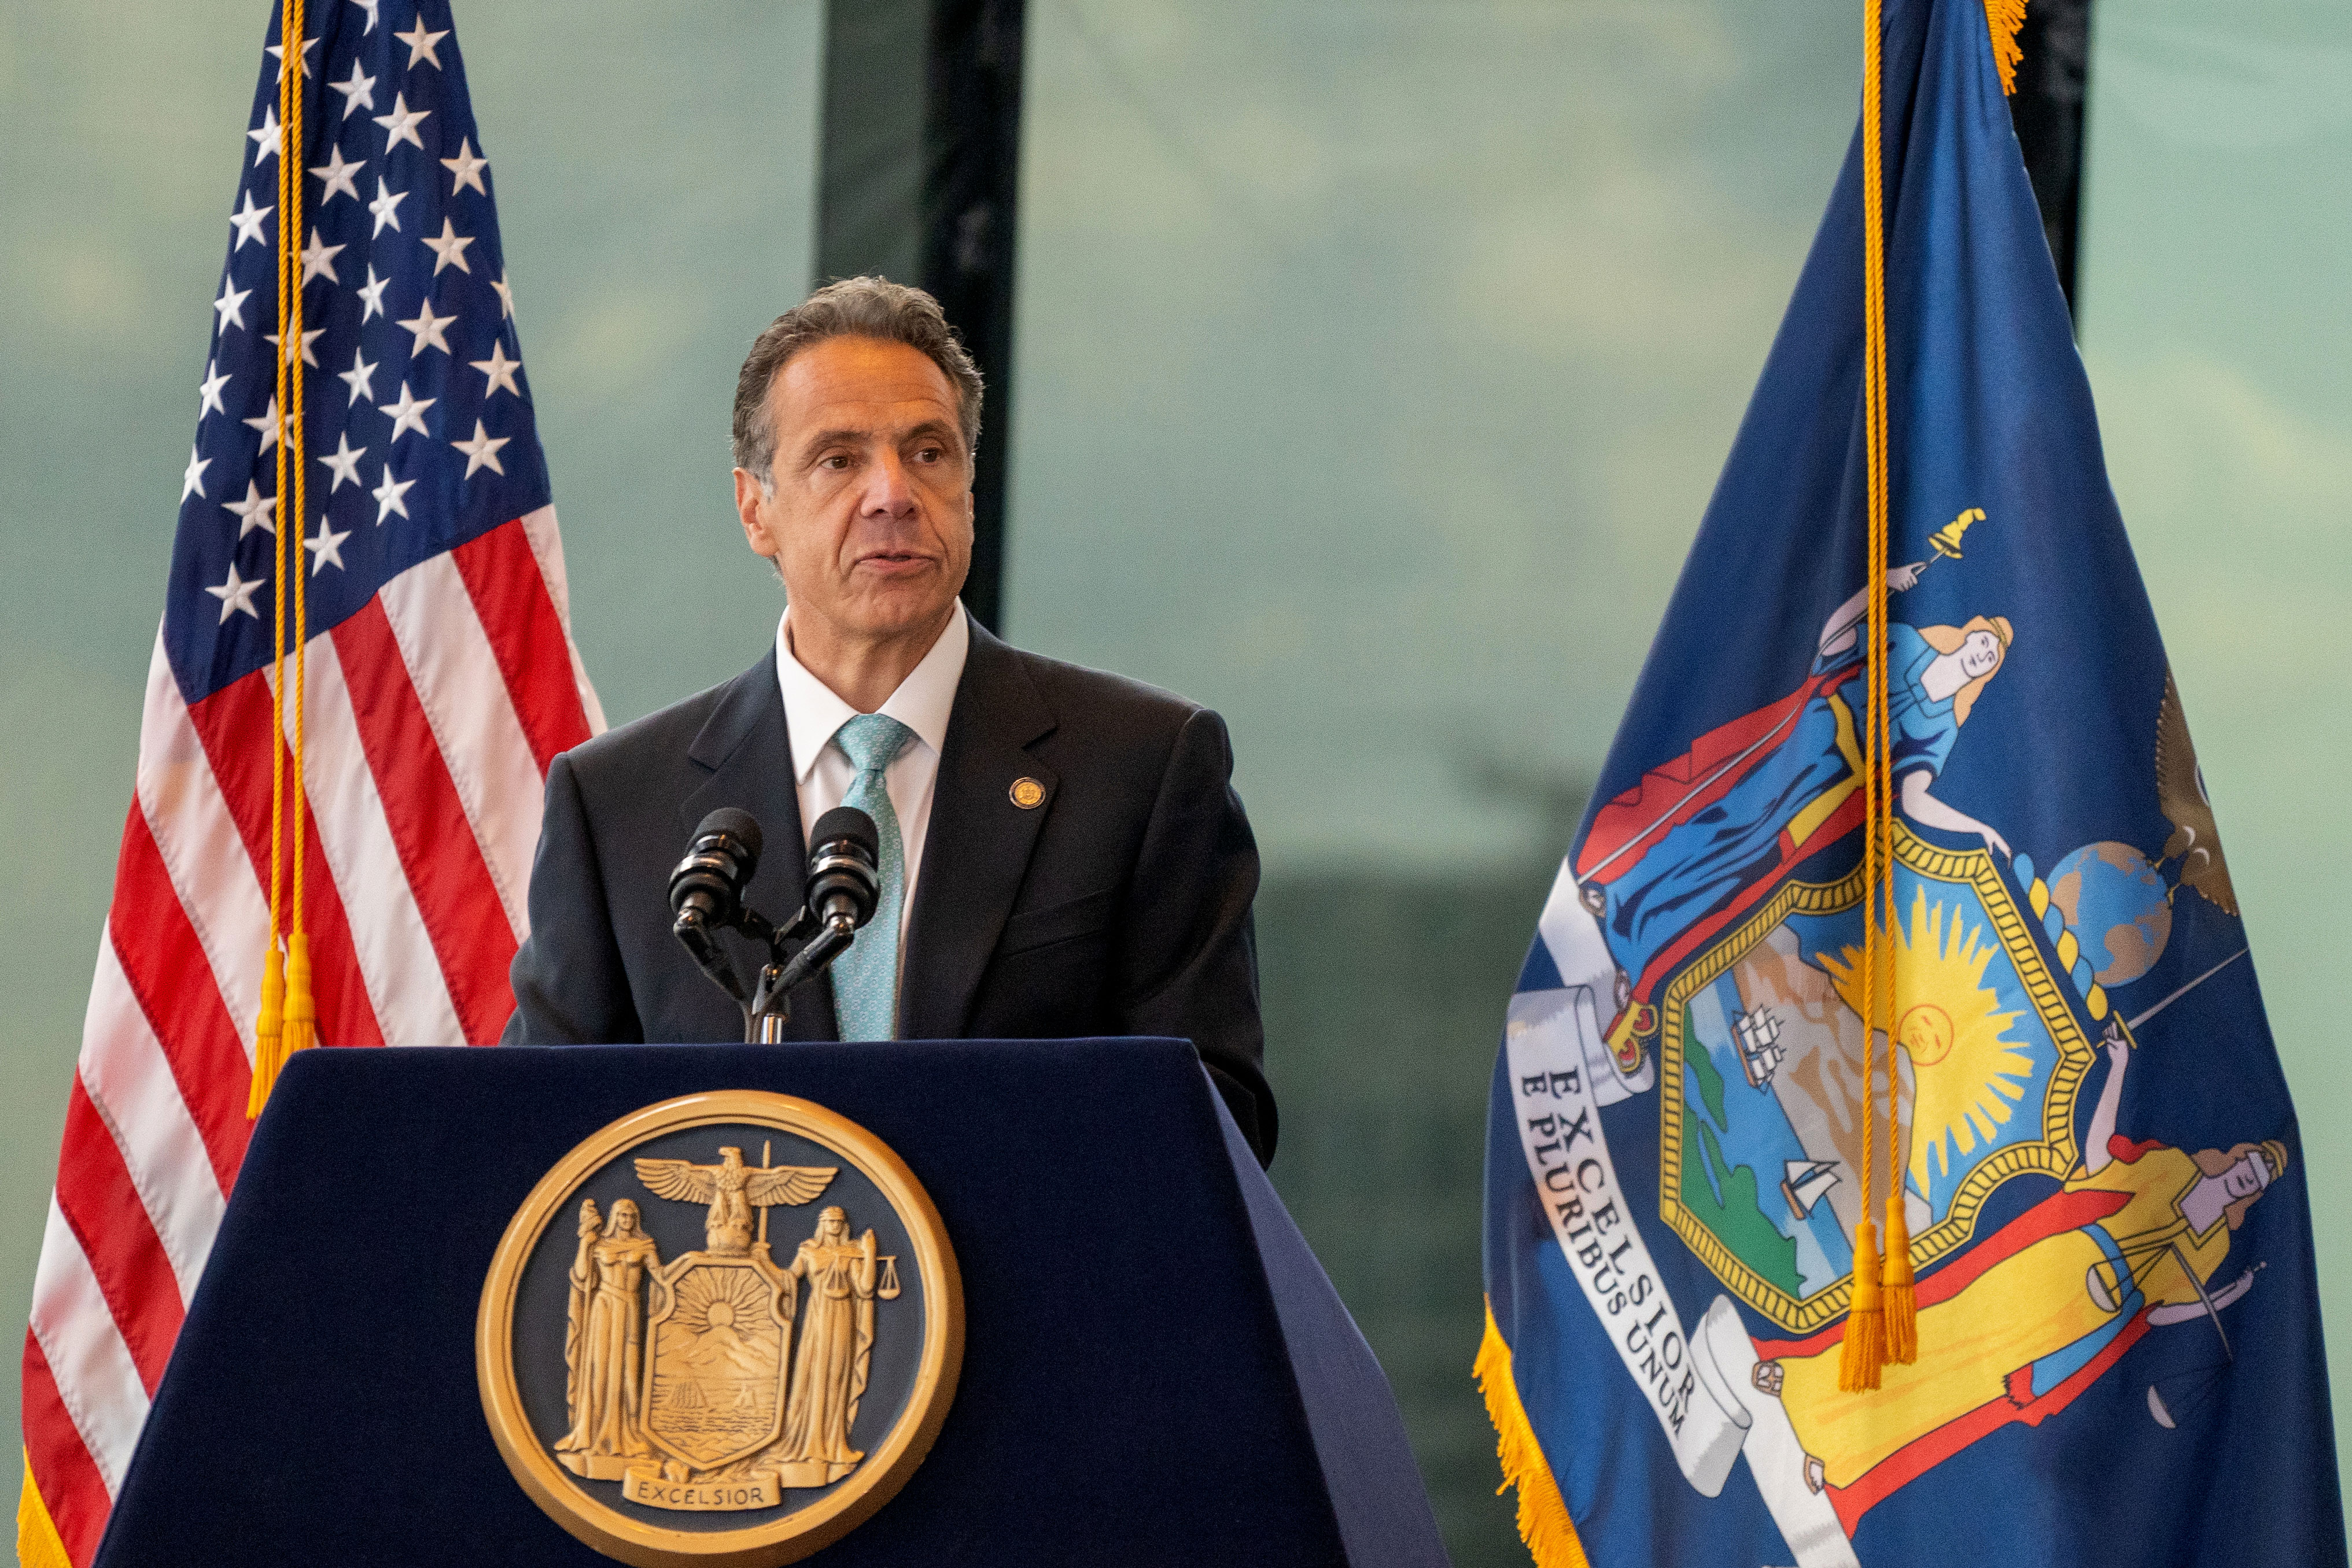 New York Gov. Andrew Cuomo speaks during a press conference at One World Trade Center in New York on June 15, 2021.